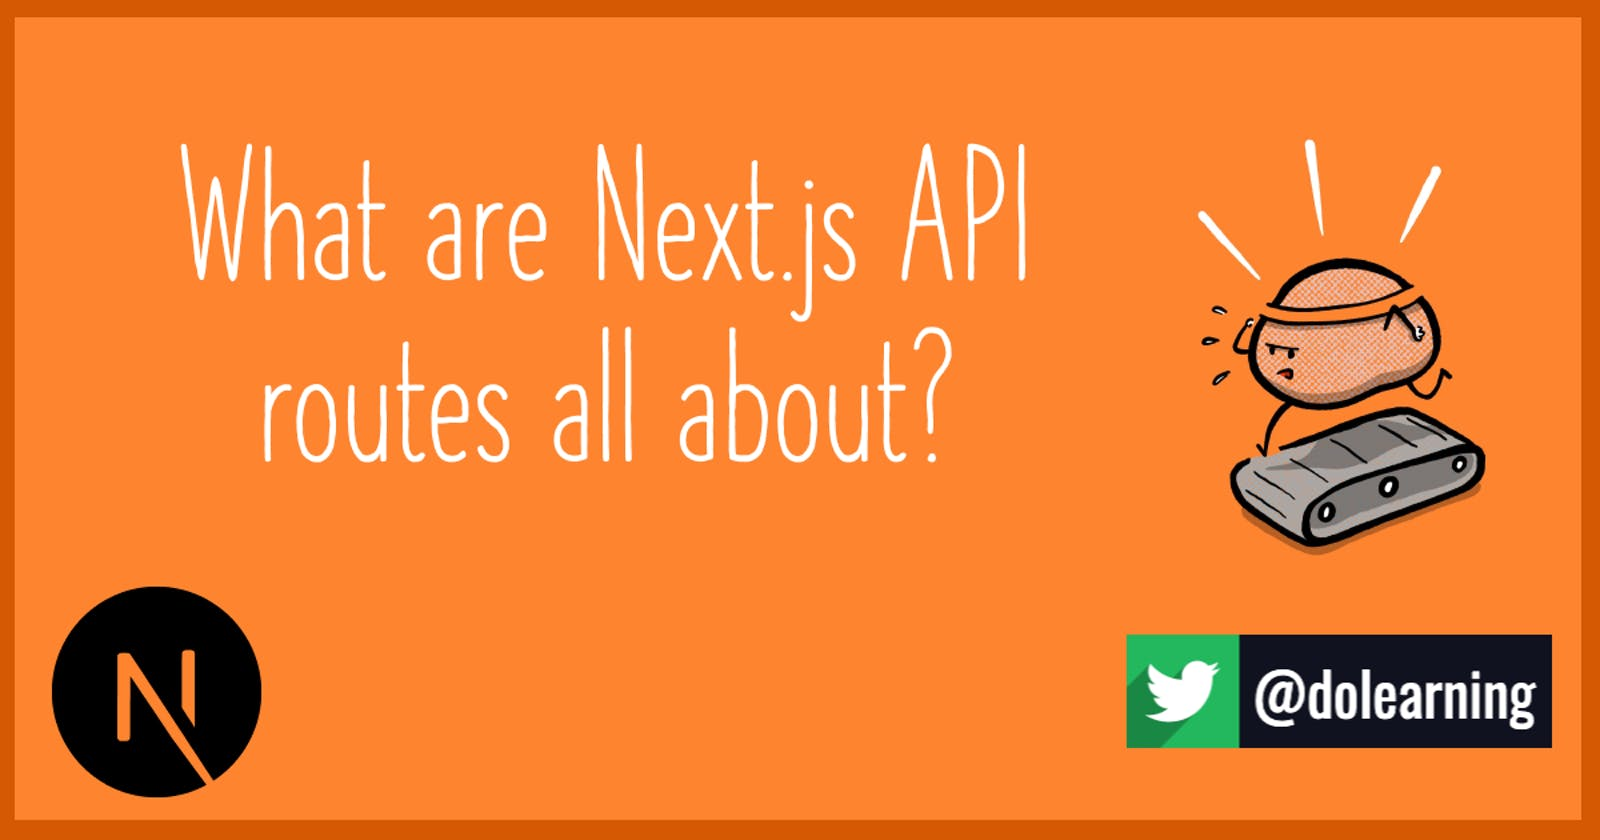 What are Next.js API routes all about?